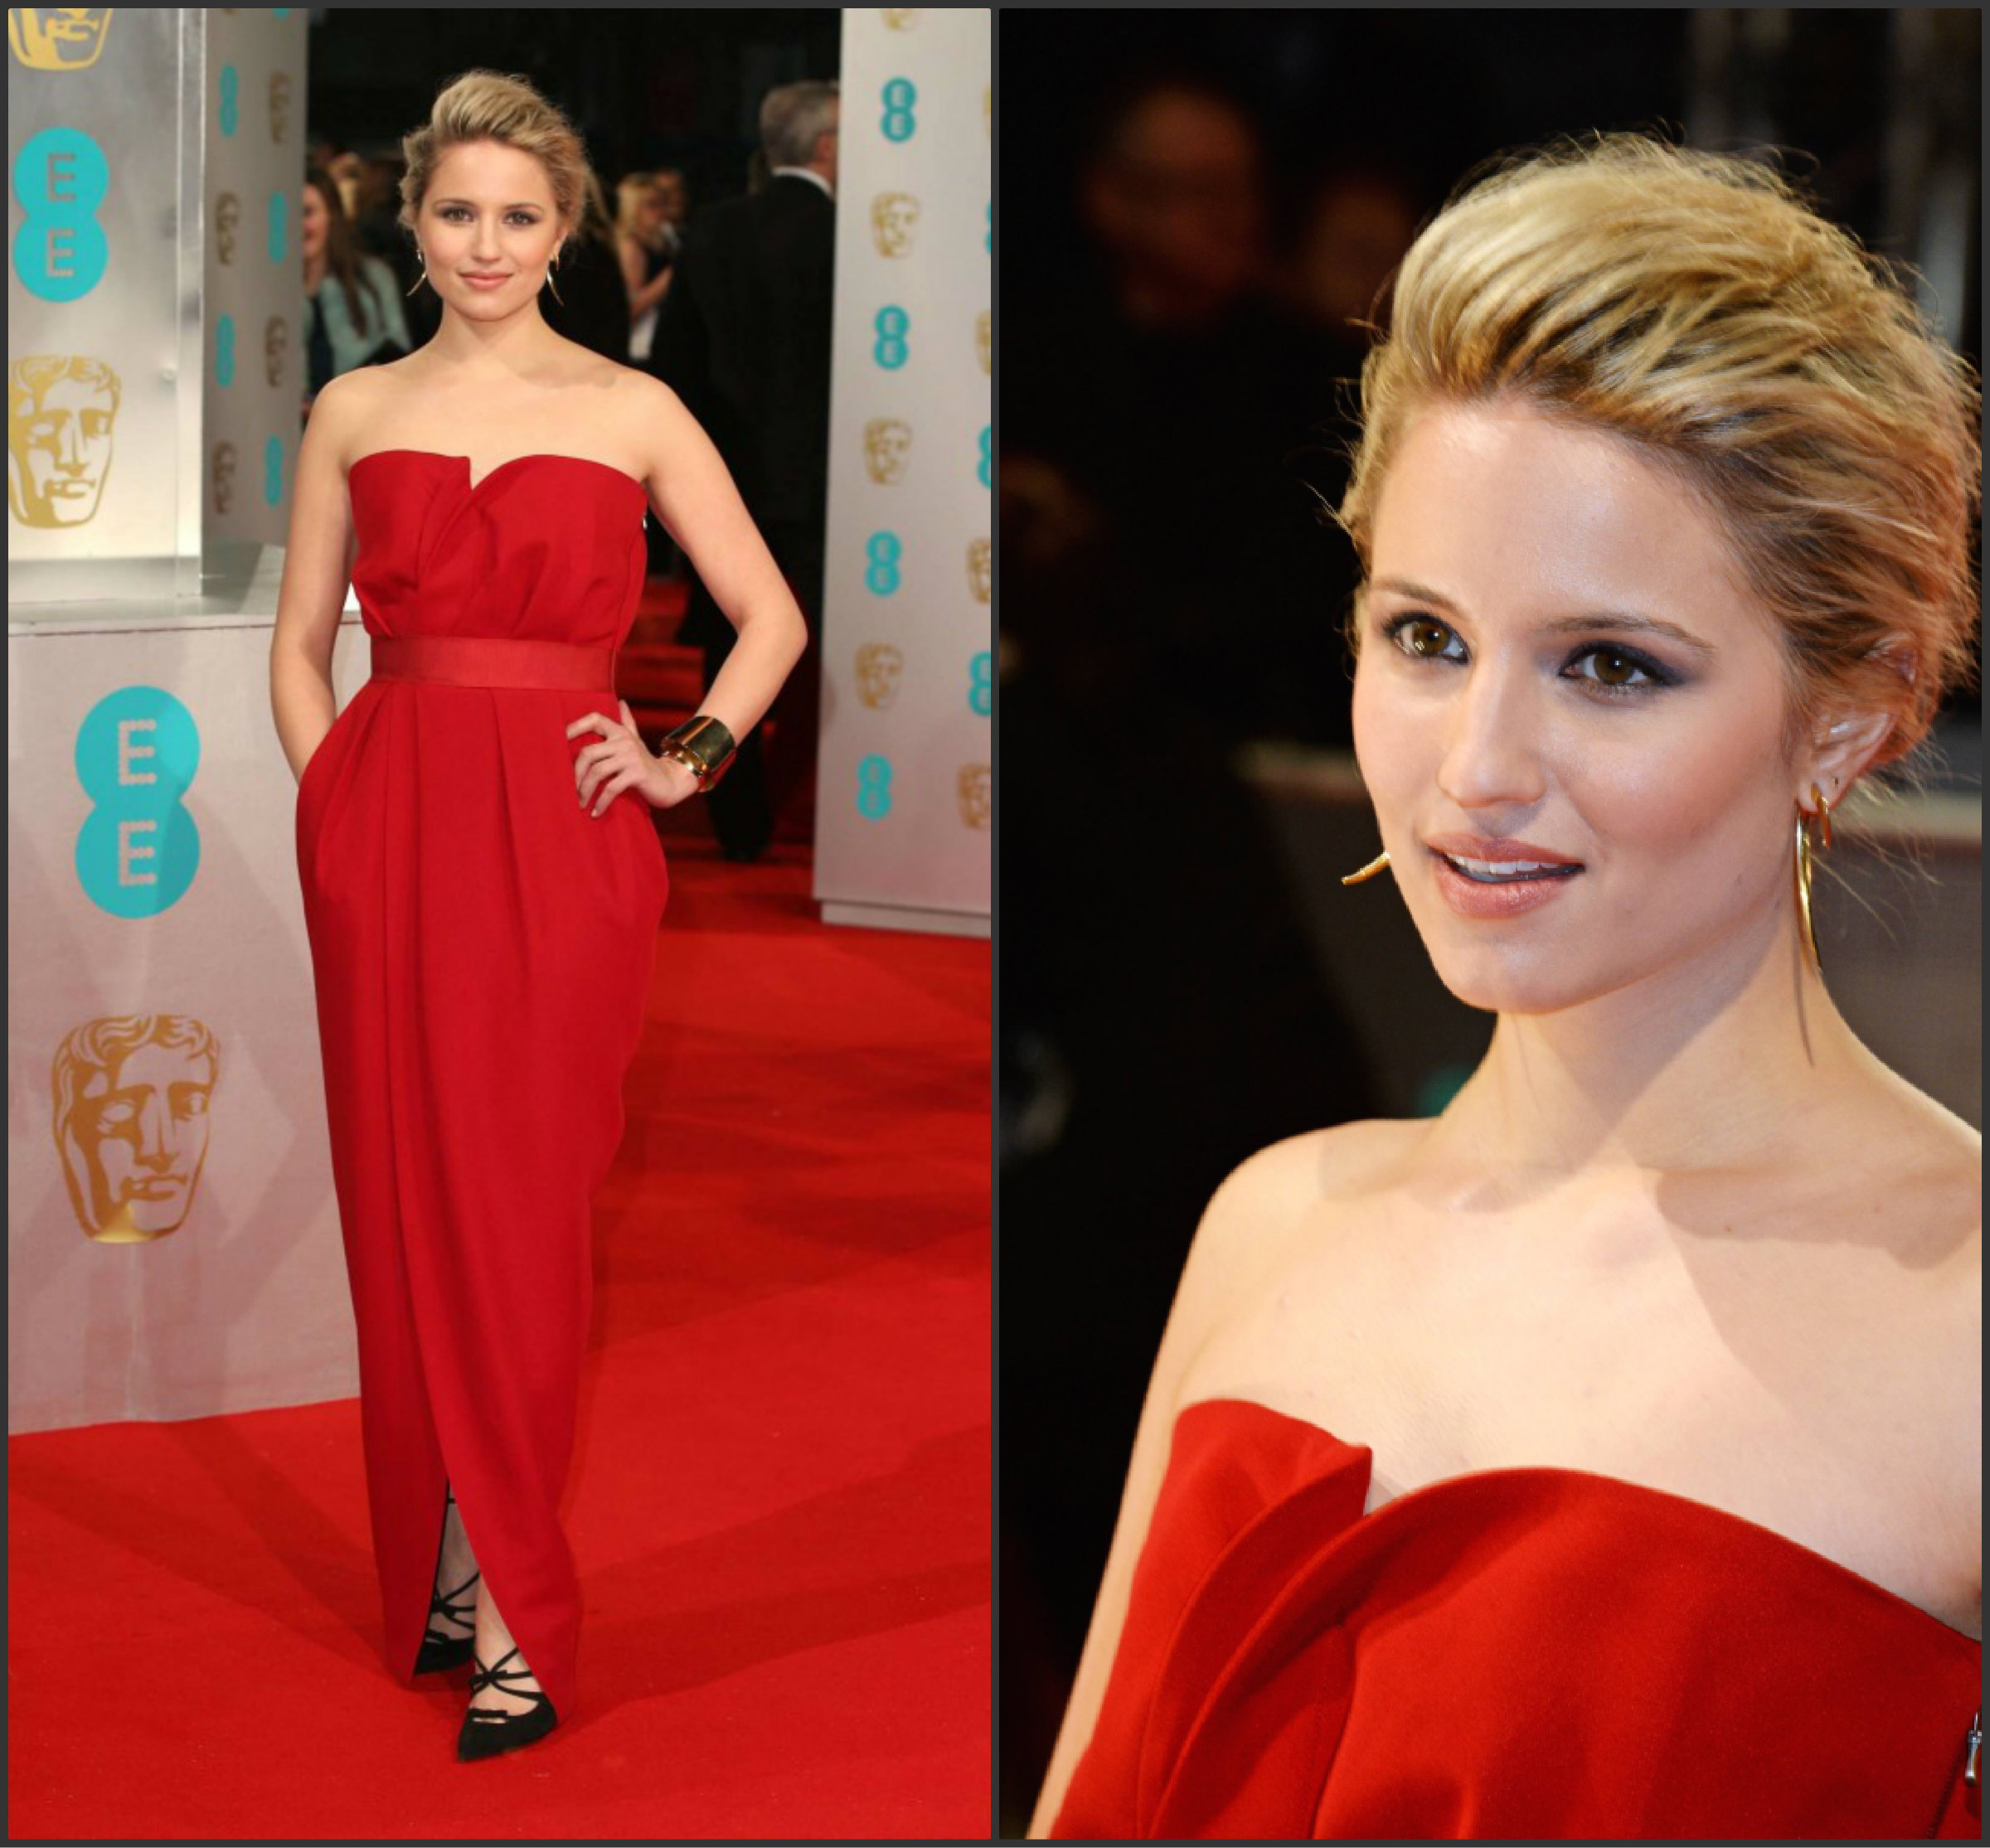 Dianna-Agron-In-Lanvin-at-2015-BAFTAs